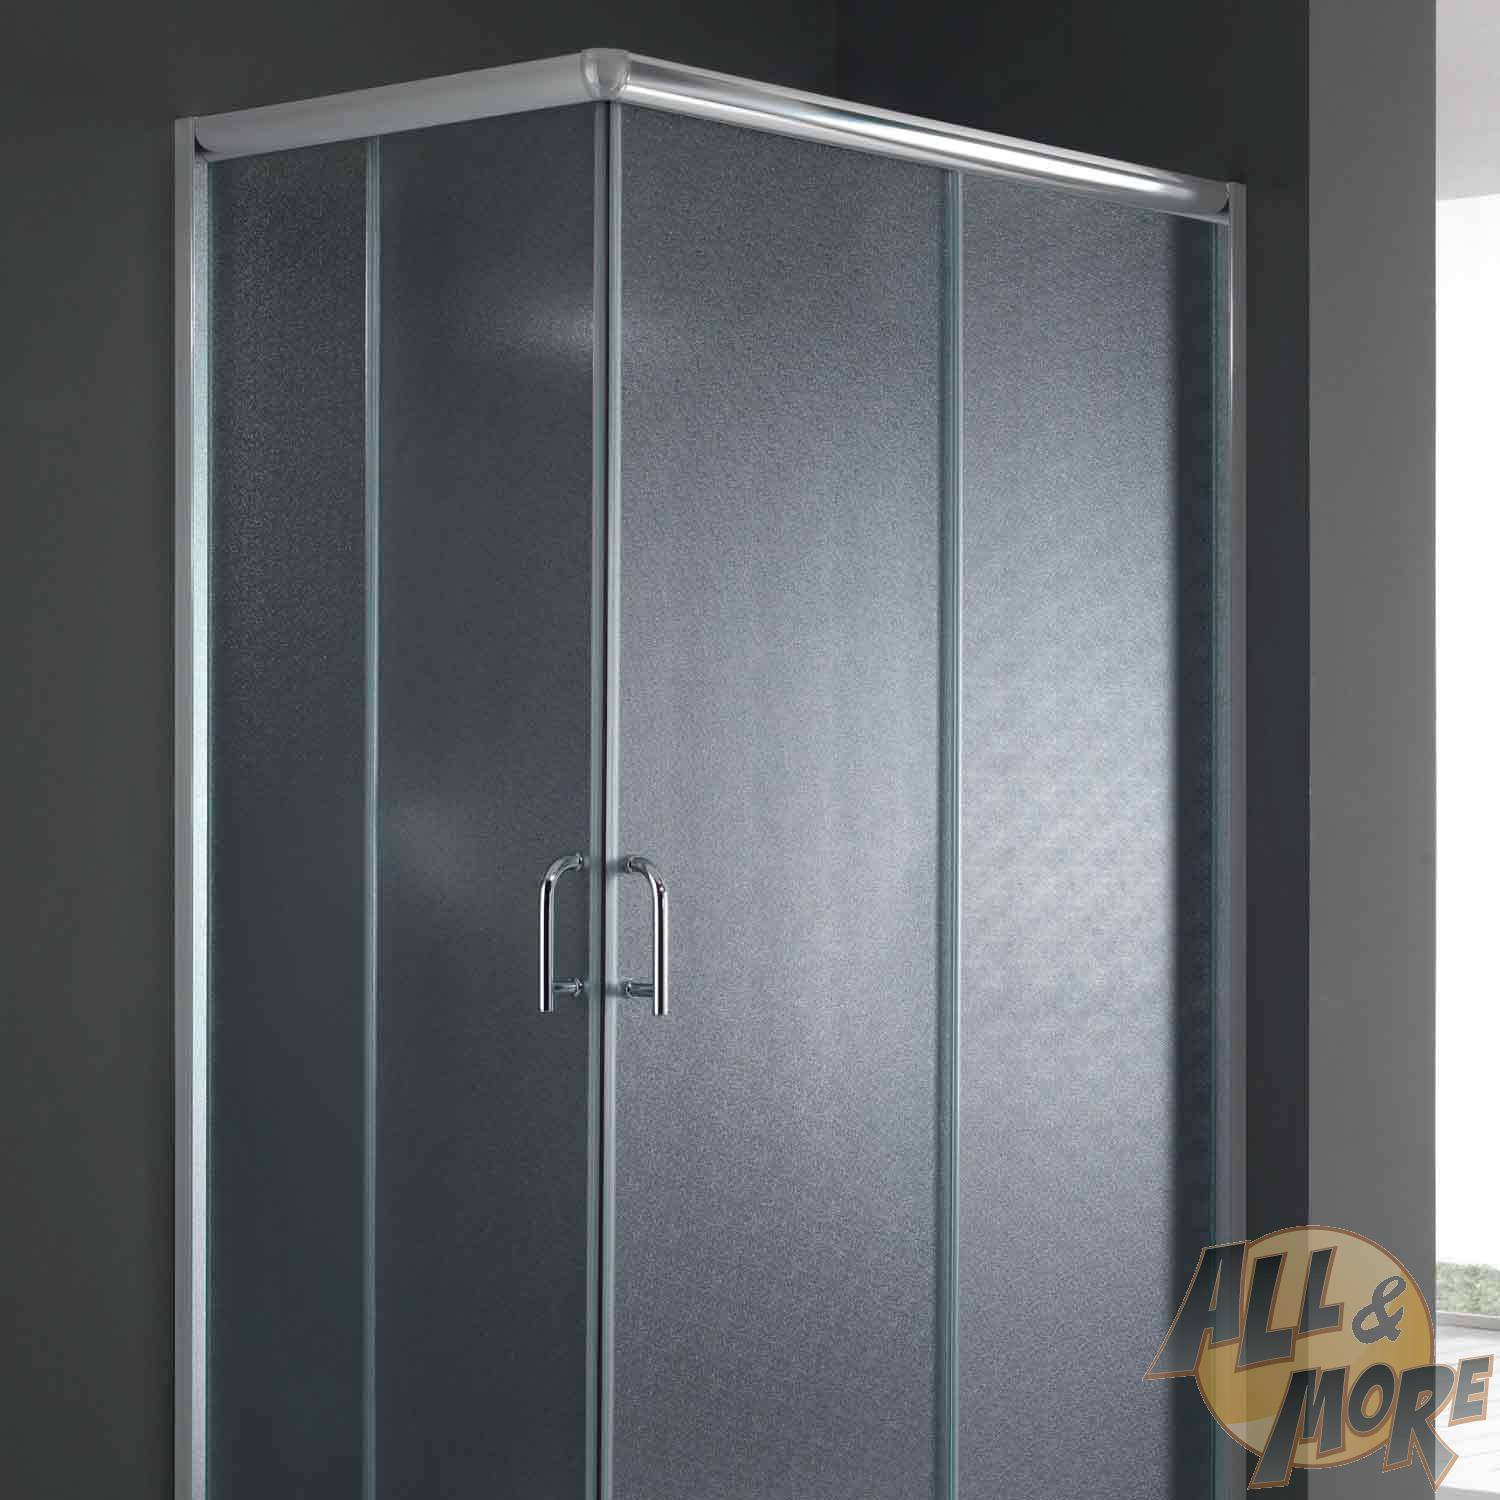 cabine de douche paroi de douche 80x70 h200 cm verre opaque angulaire alabama ebay. Black Bedroom Furniture Sets. Home Design Ideas